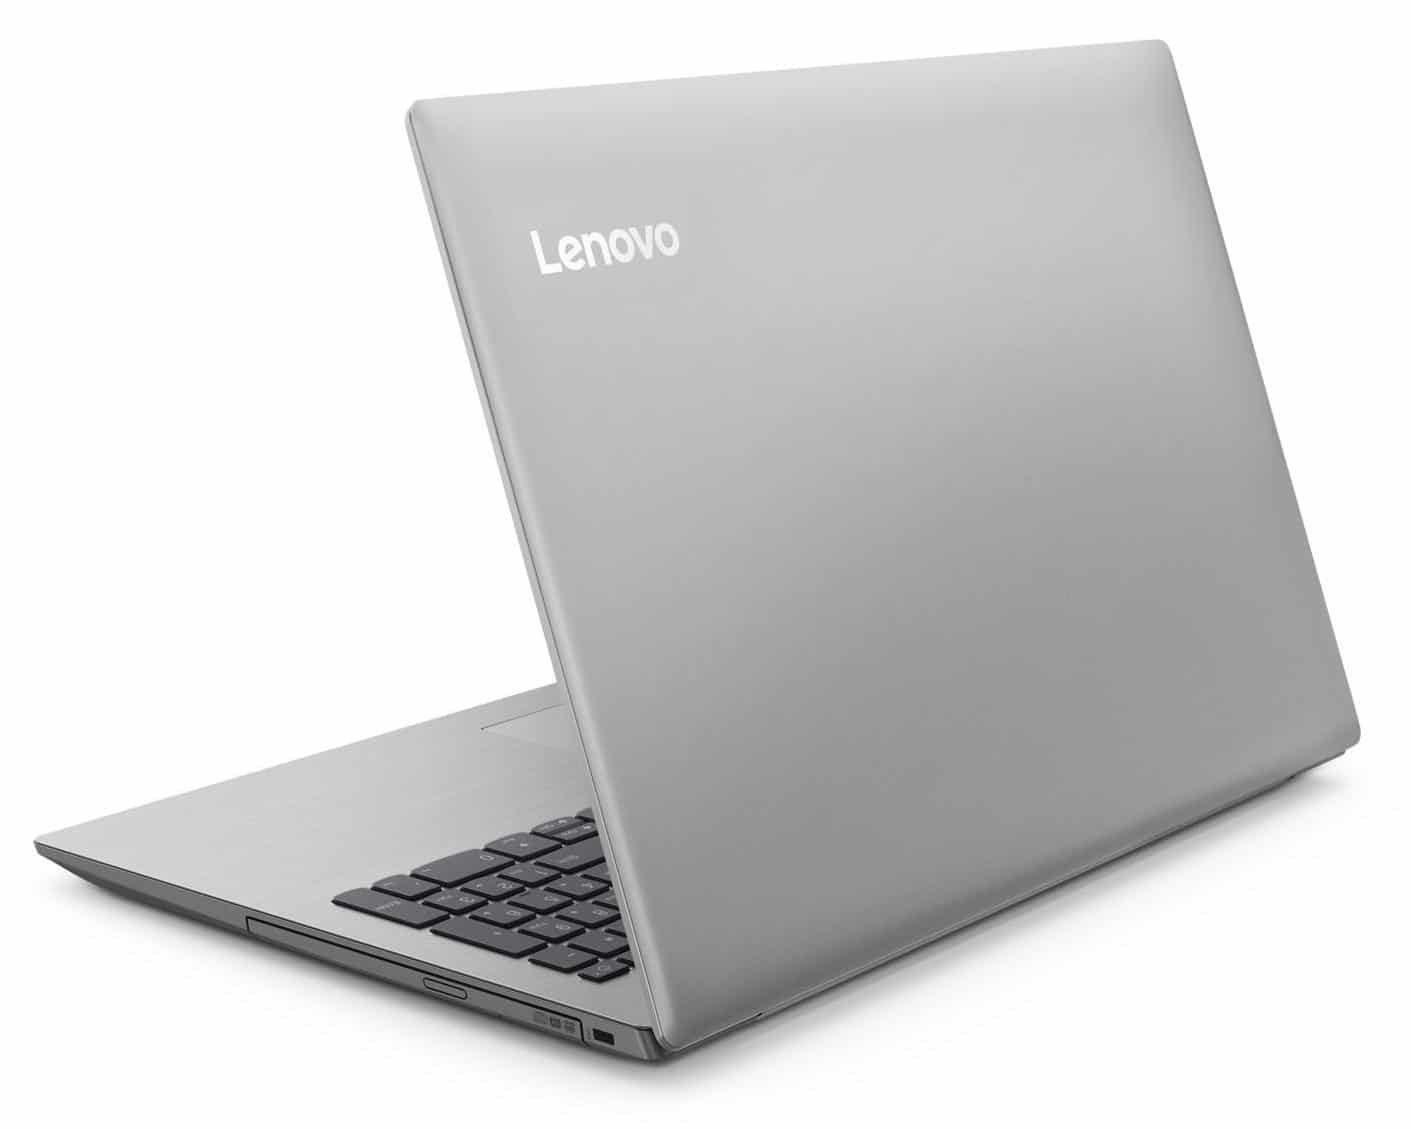 Lenovo IdeaPad 330-15IKB, PC portable 15 pouces Full HD Core i5 à 499€